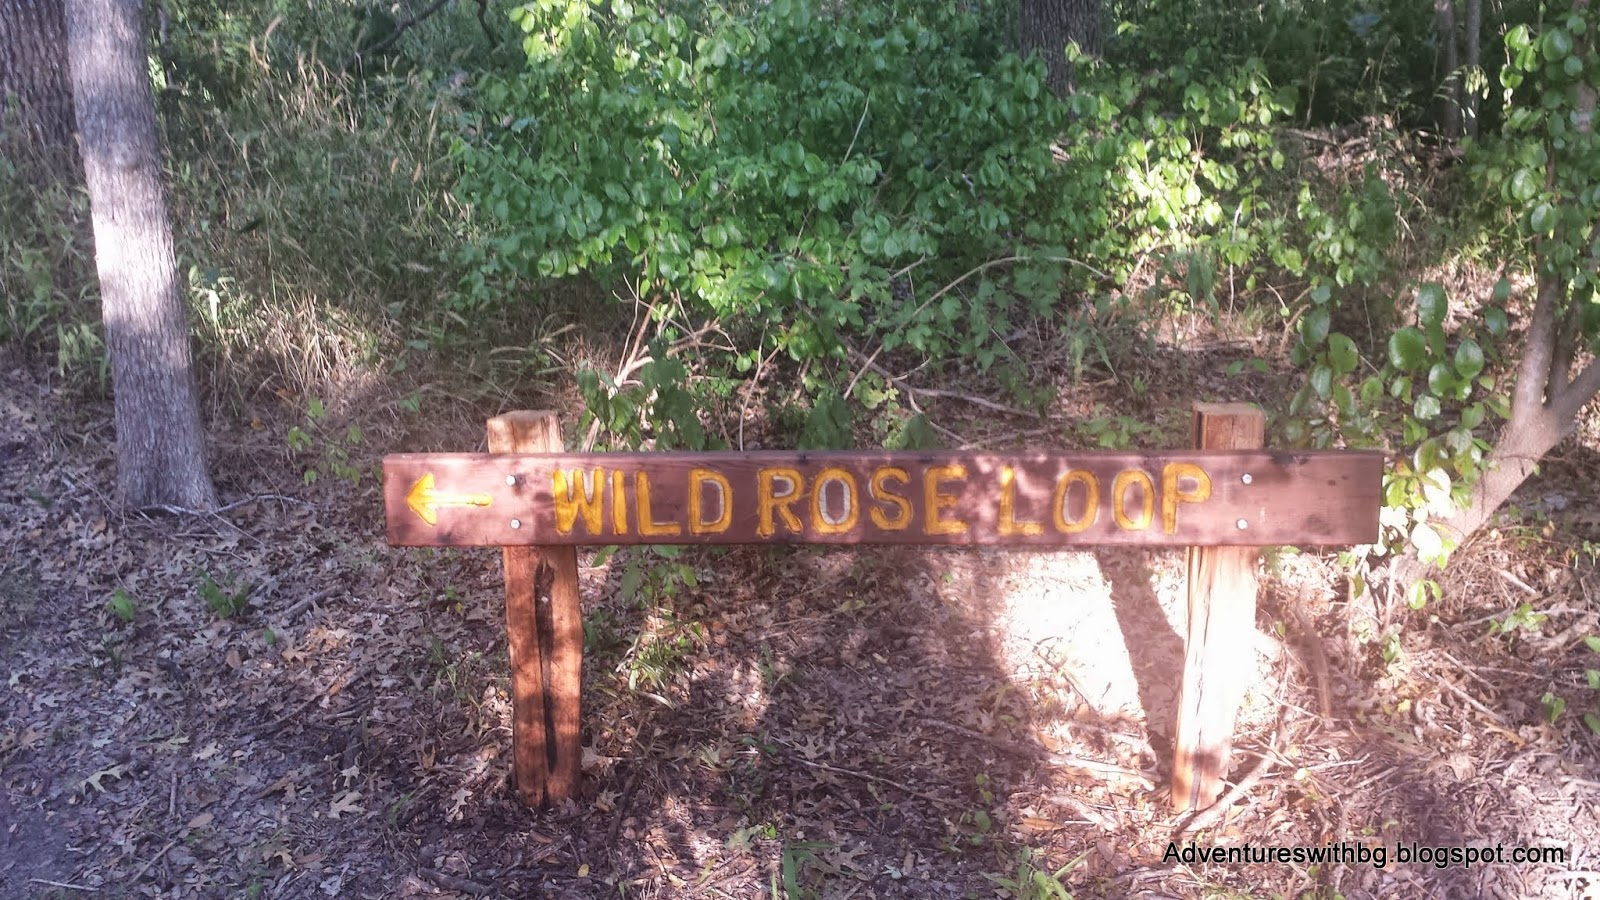 The wild rose loop trailhead at lockhart state park